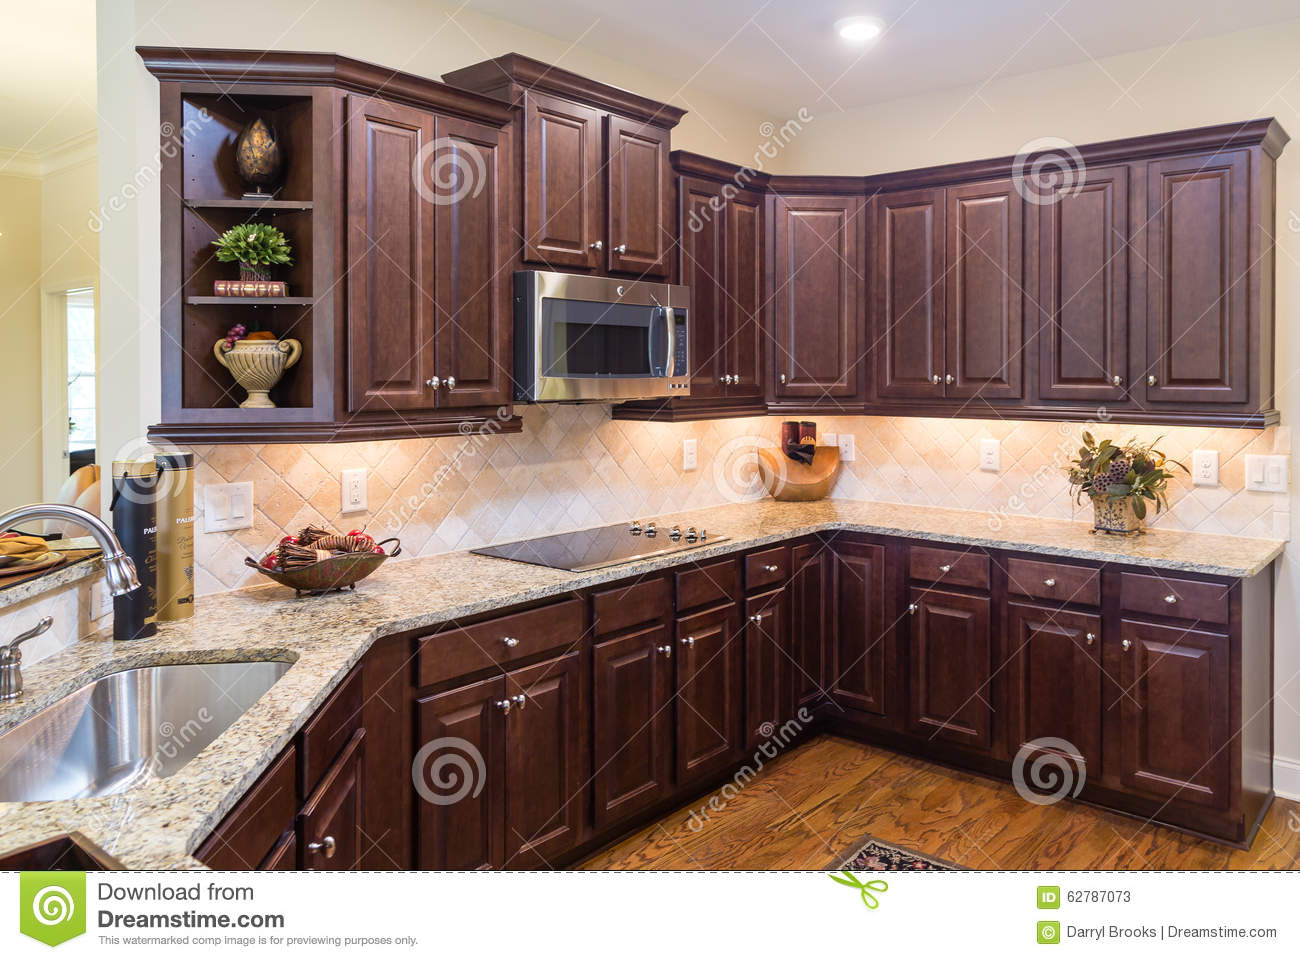 Modern Kitchen With Dark Cabinets And Wood Floor Stock